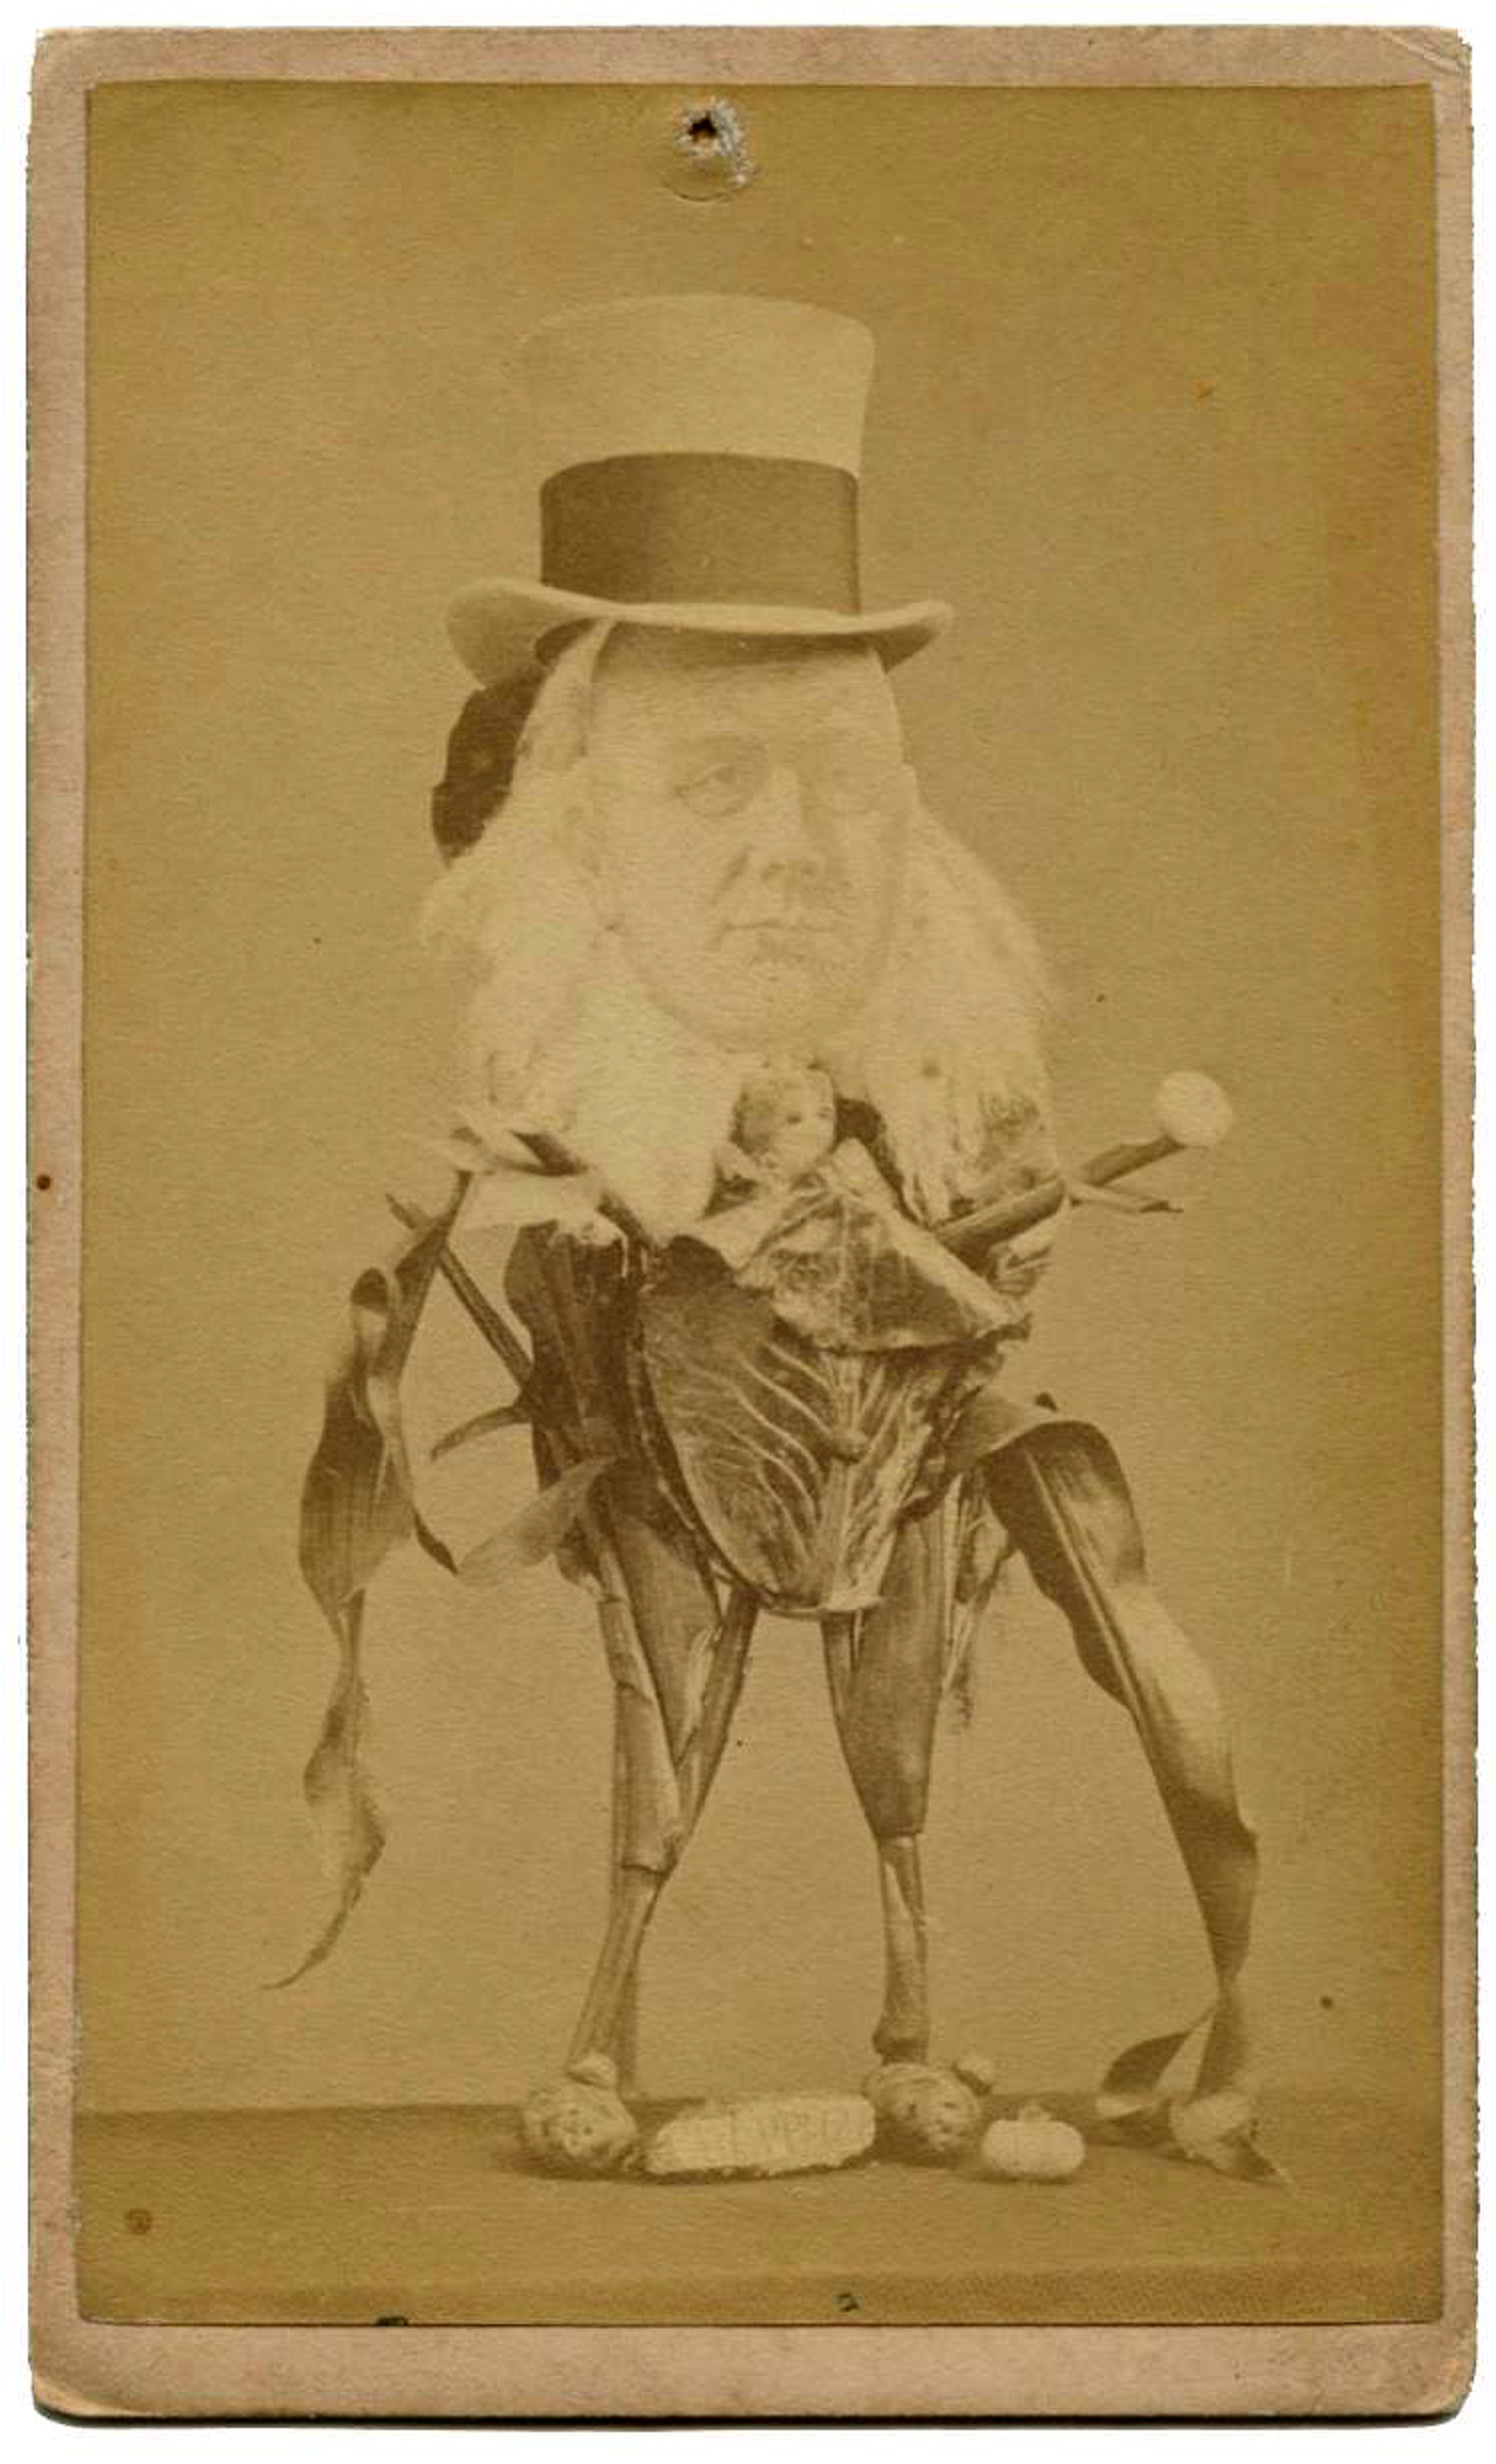 Carte De Visite c.late 19th century.